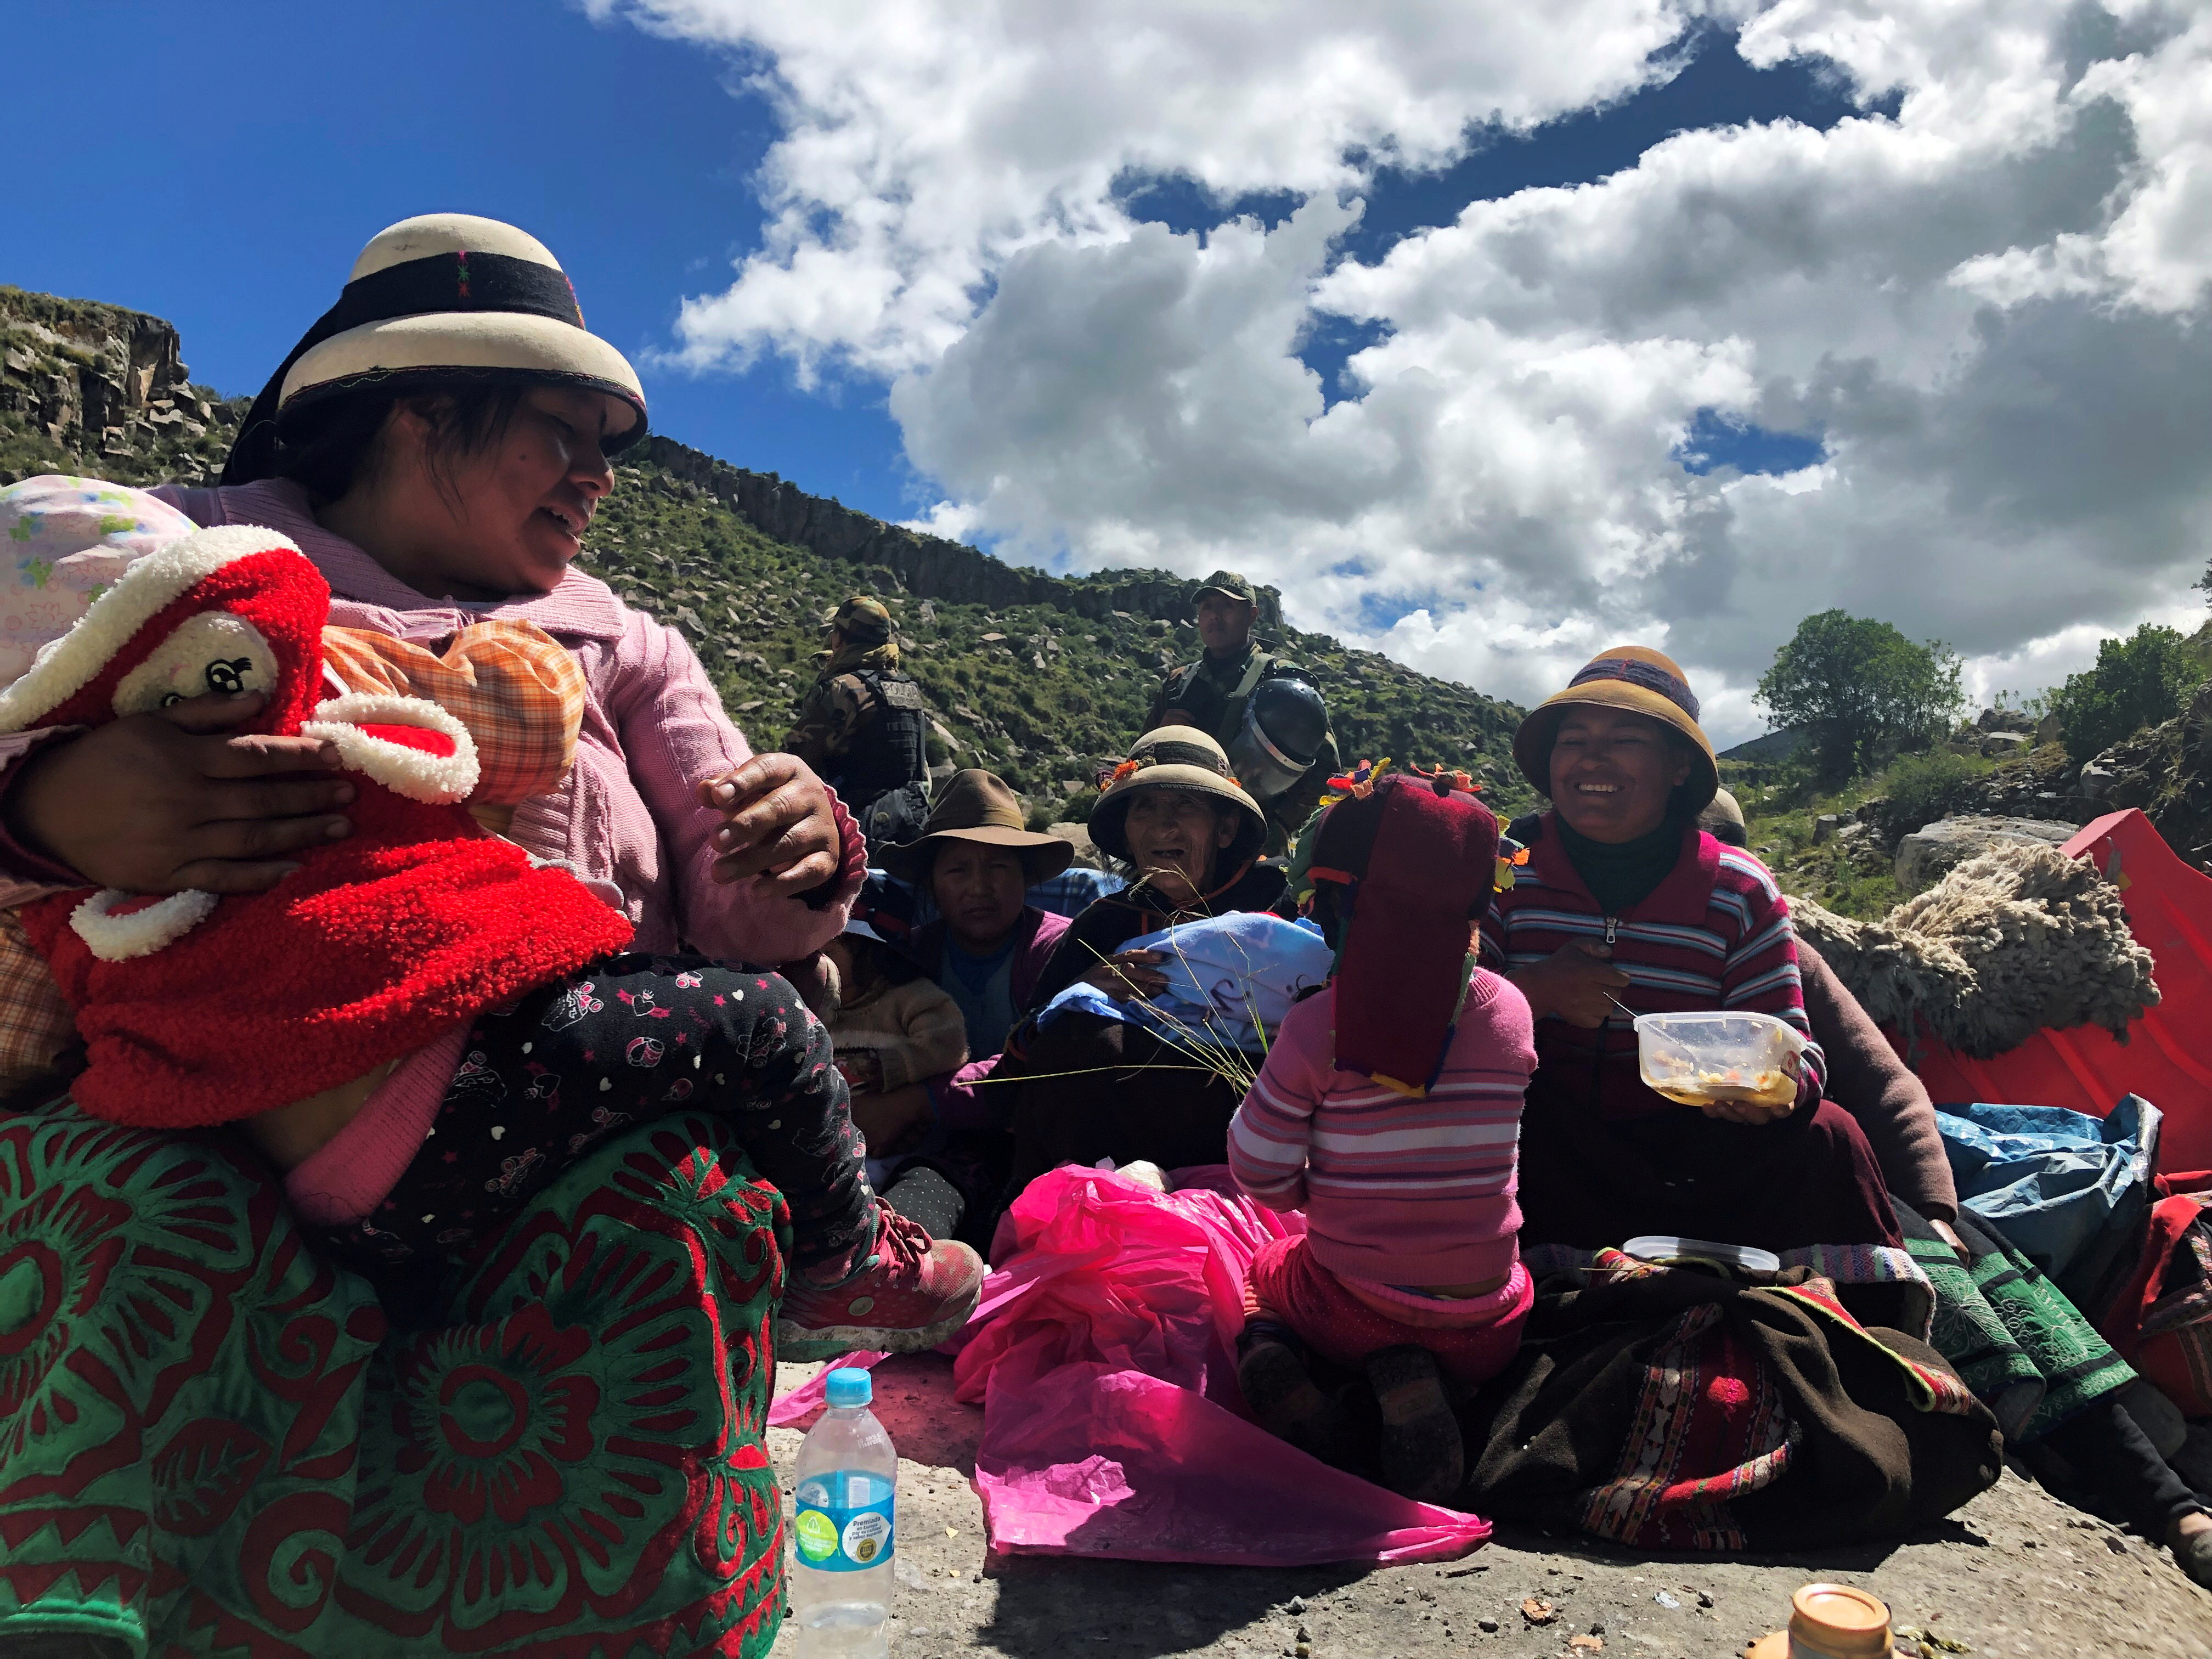 Demonstrators block a road access to a copper mine during a protest in Fuerabamba, Apurimac, Peru, March 29, 2019. REUTERS/Mitra Taj/File Photo